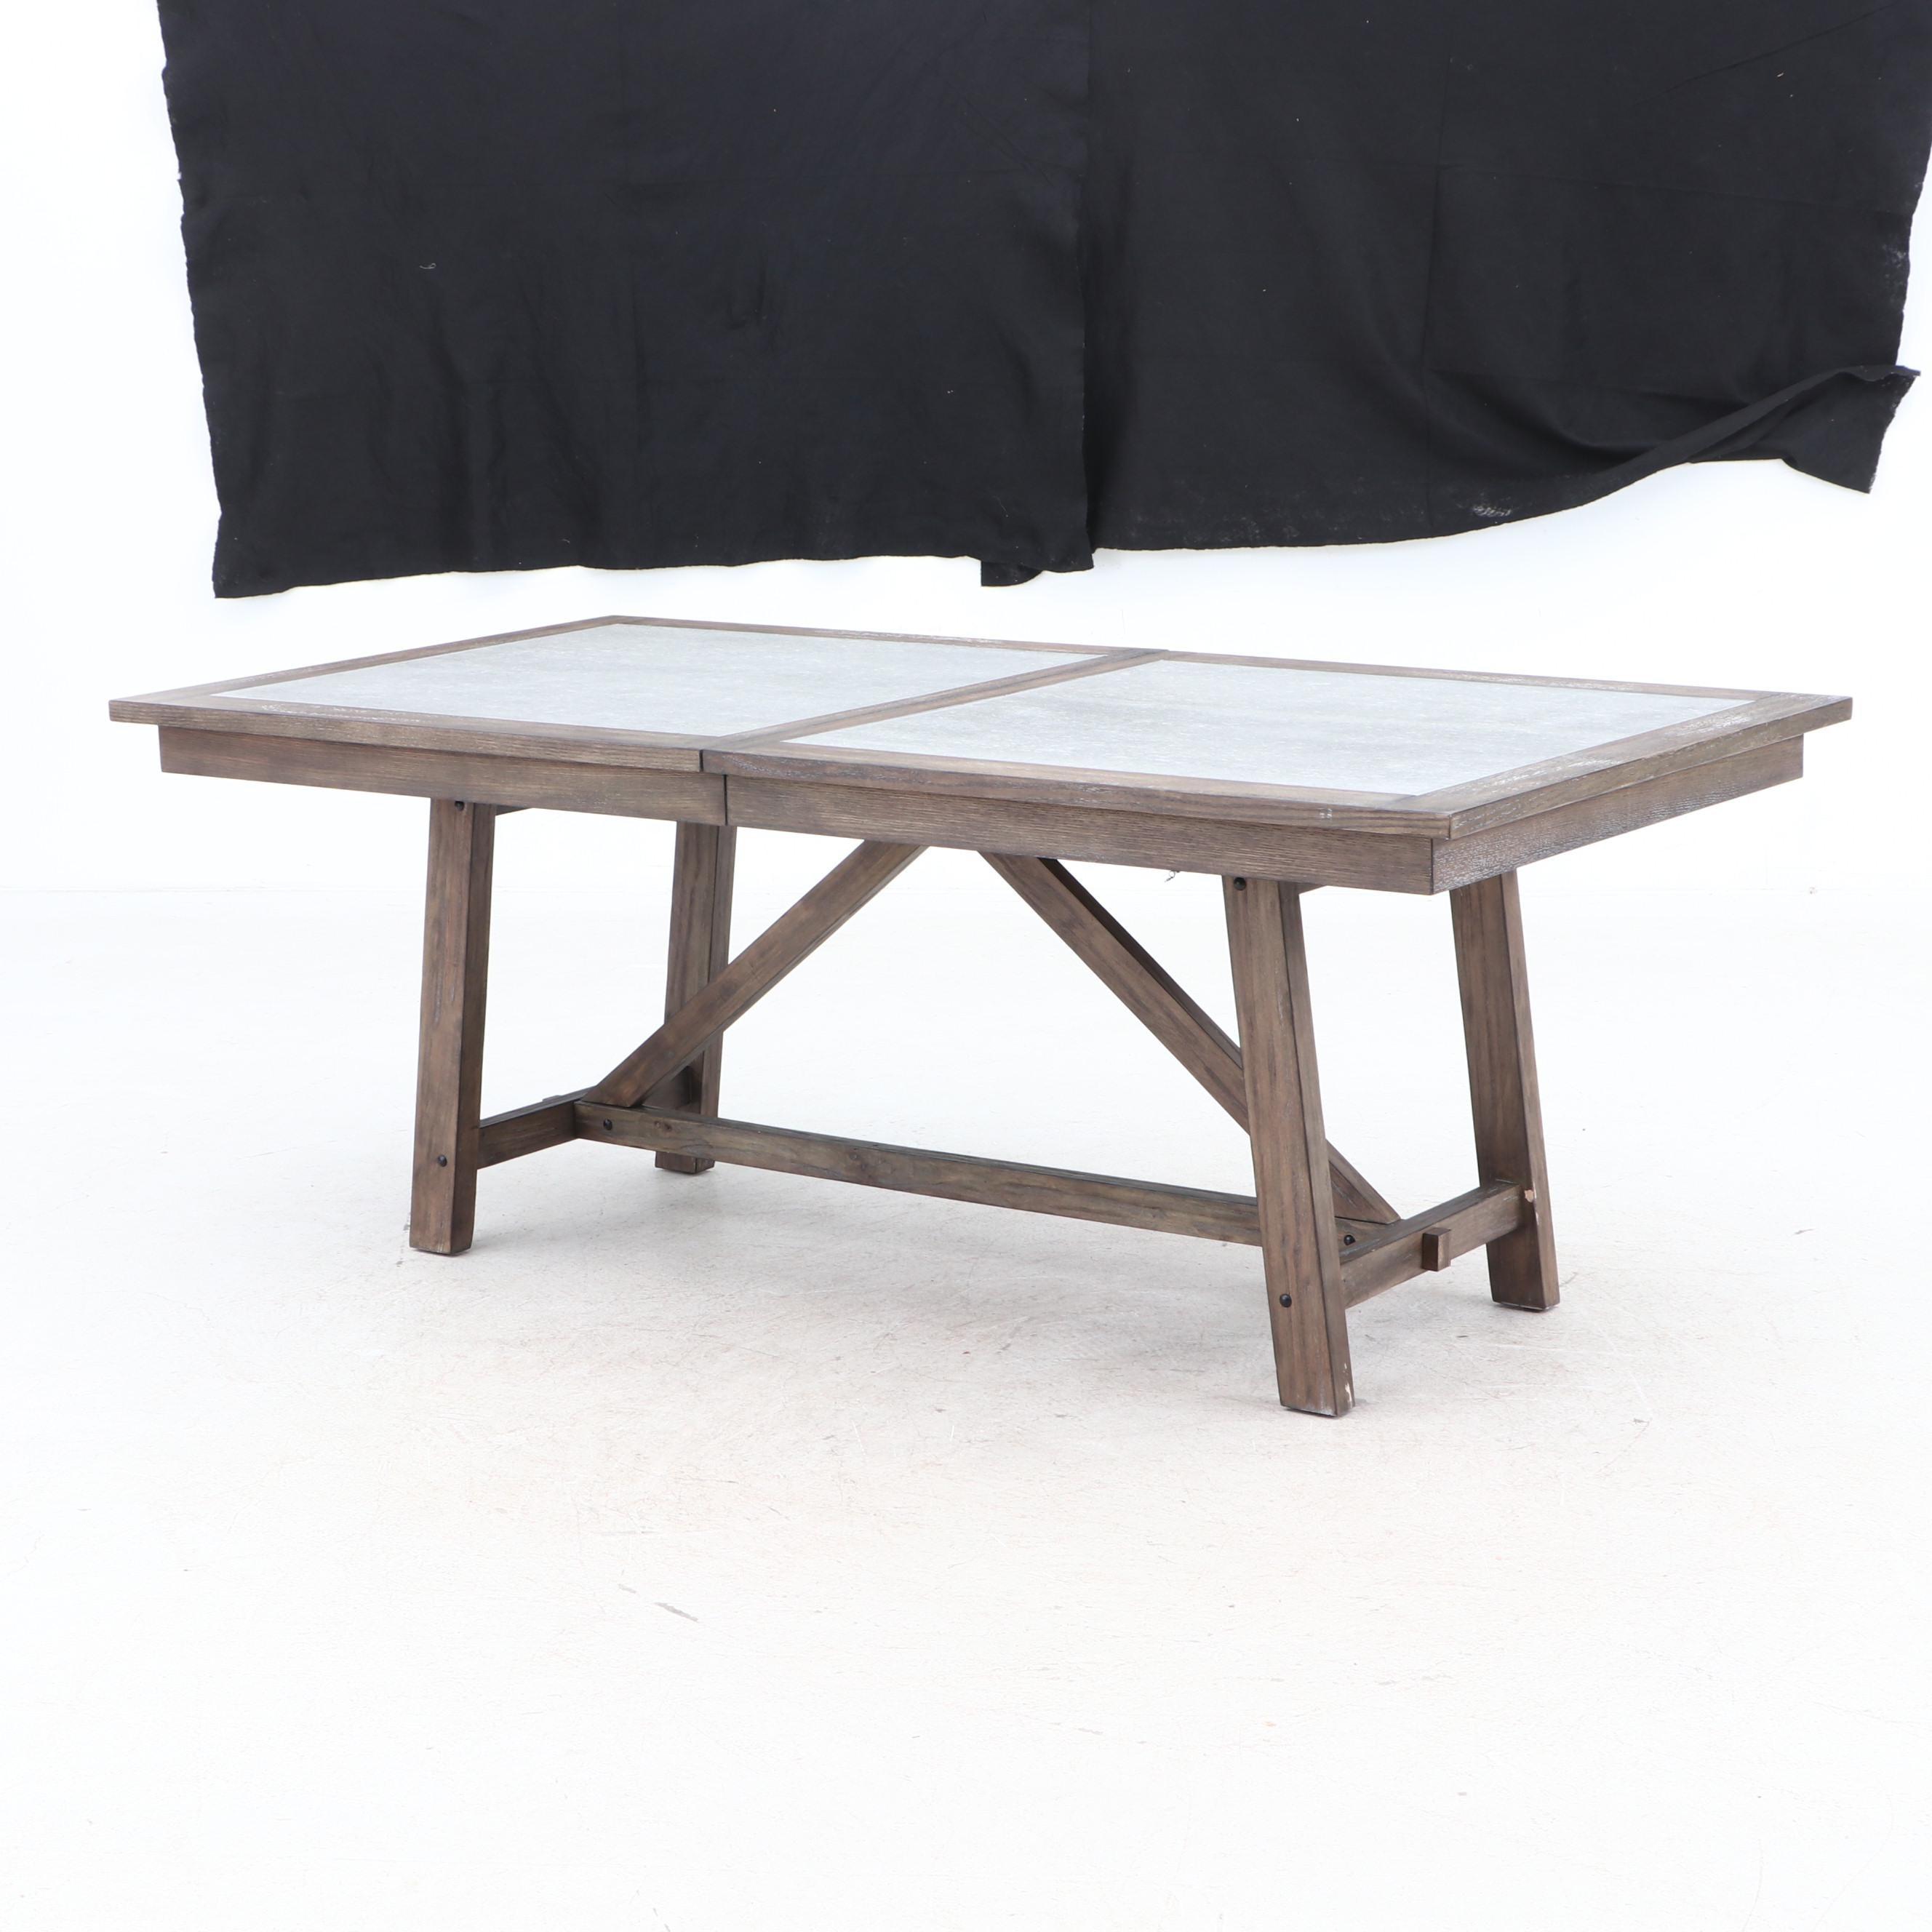 Contemporary Oak with Laminate Insert Top Trestle Dining Table